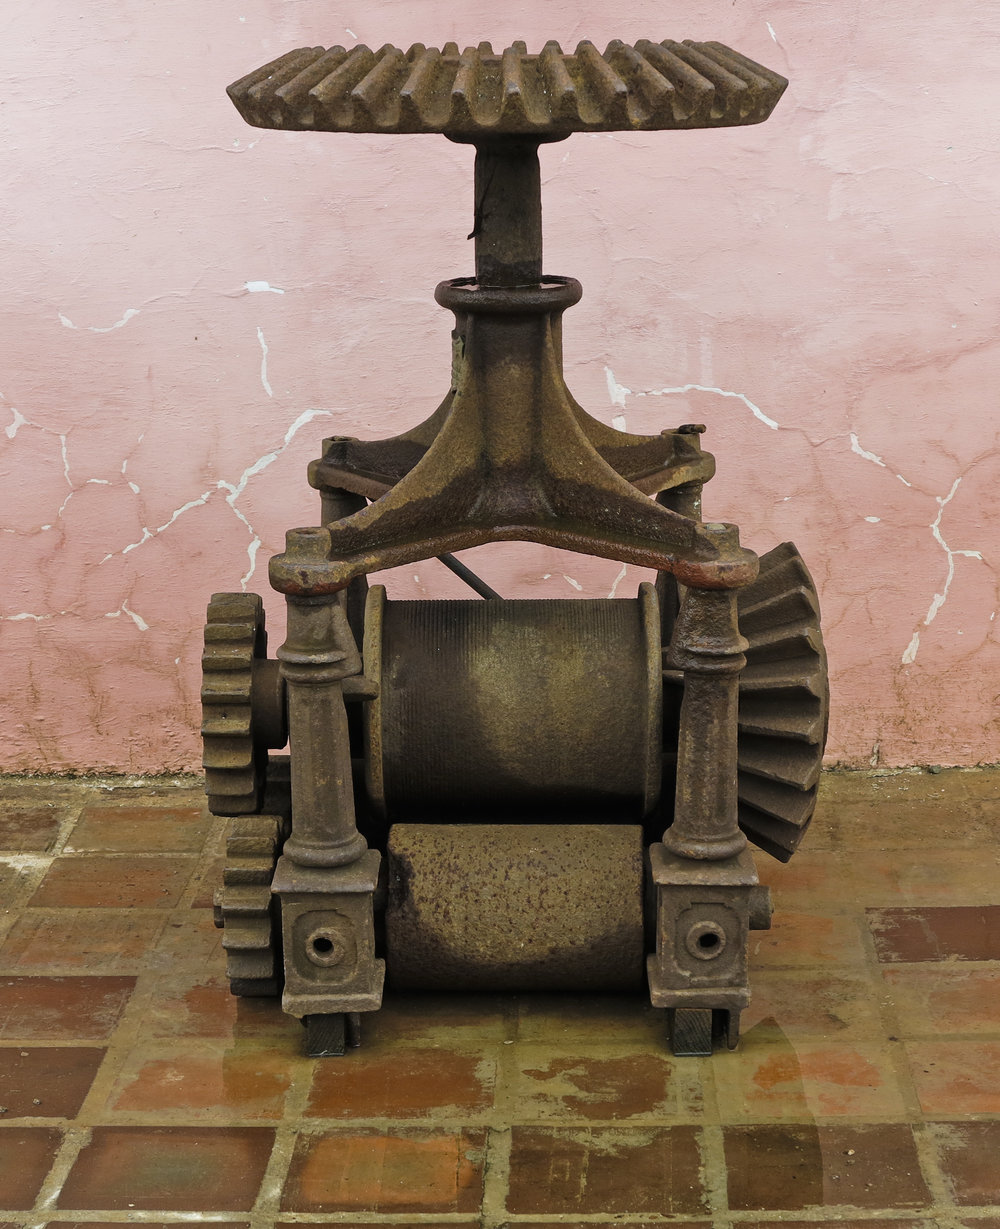 Device used to extract juice from raw sugar cane. Located on a former plantation near Trinidad, Cuba.